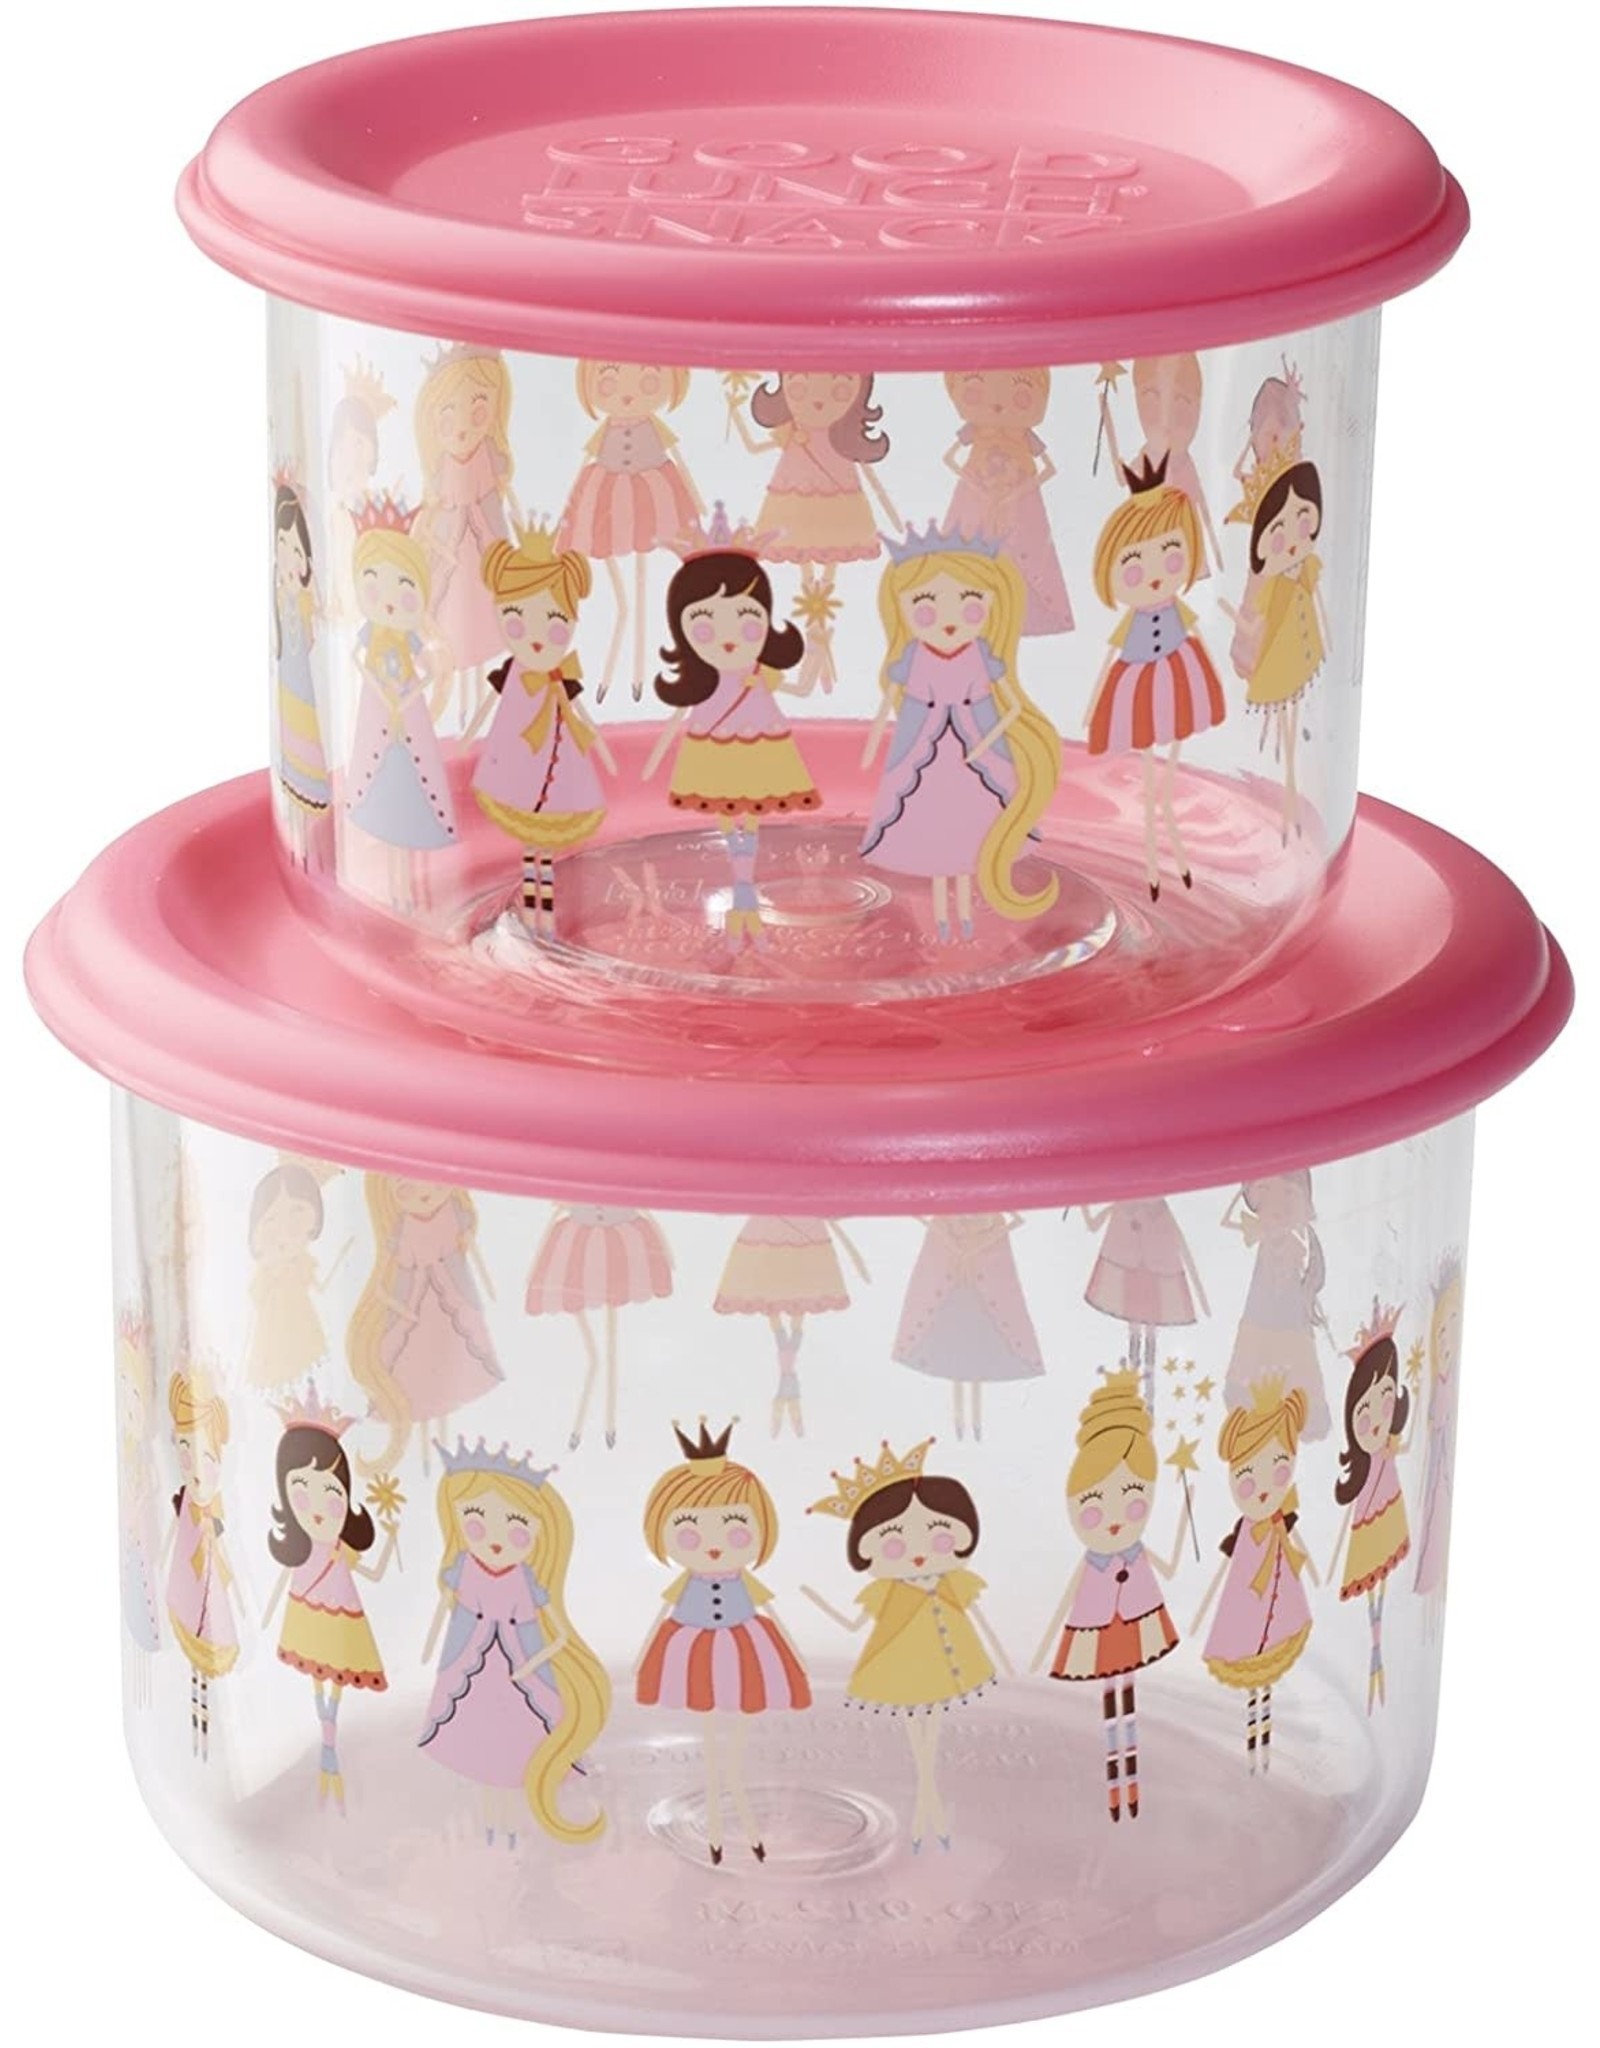 Sugarbooger Good Lunch Snack Containers Small, Princess